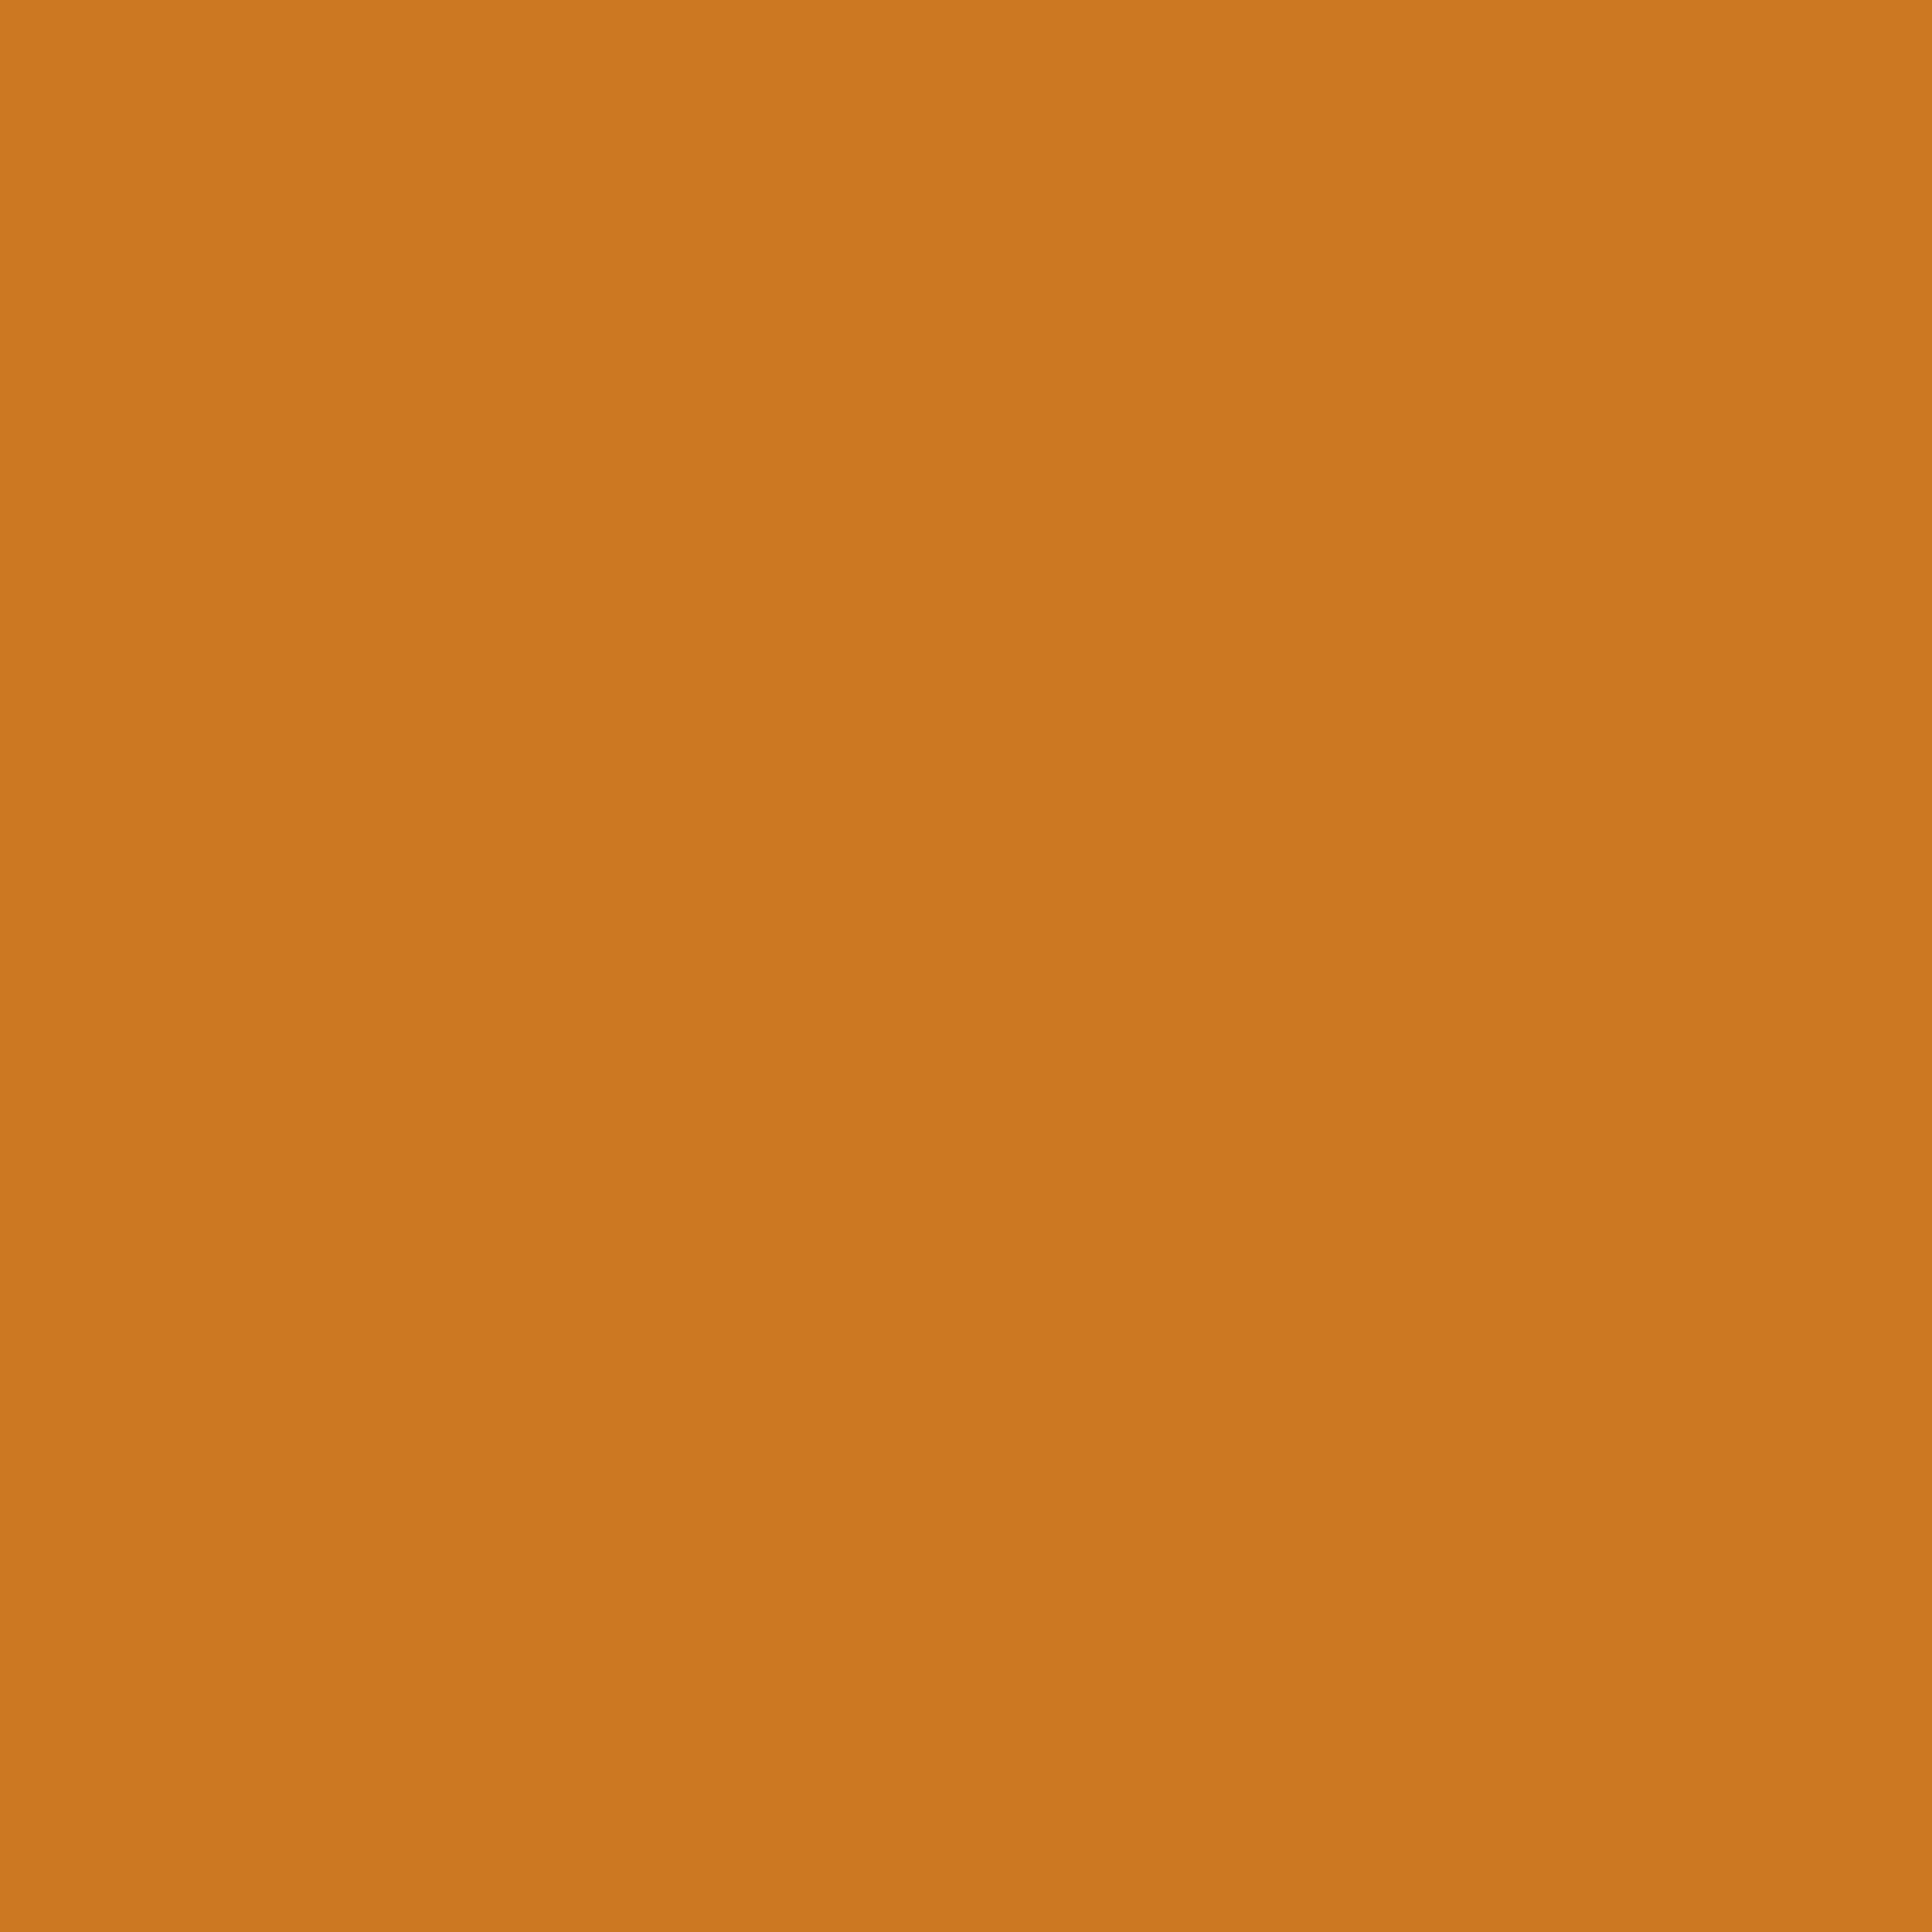 3600x3600 Ochre Solid Color Background